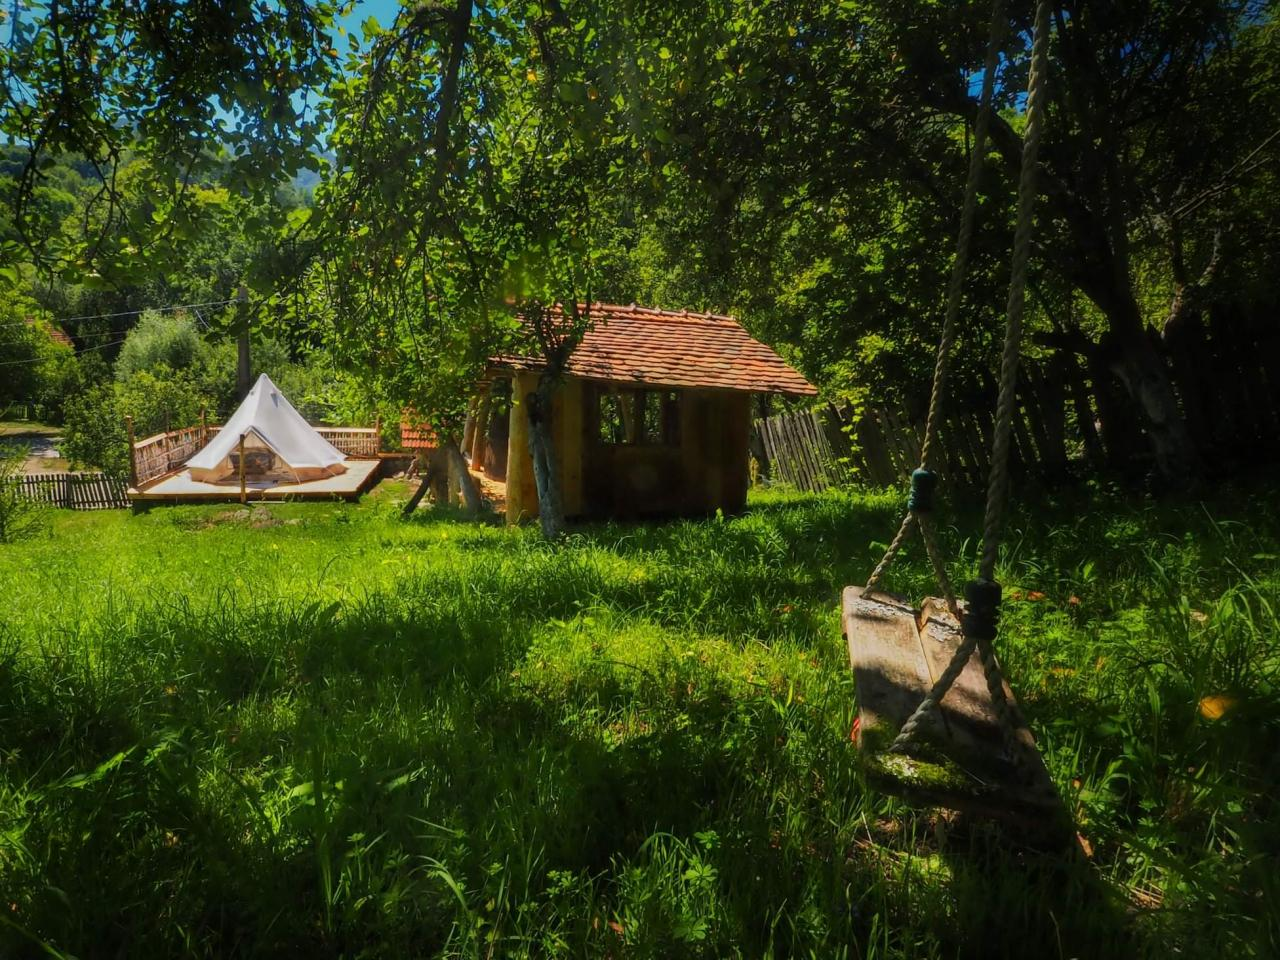 Butoi Lazy Dreams Voia Glamping